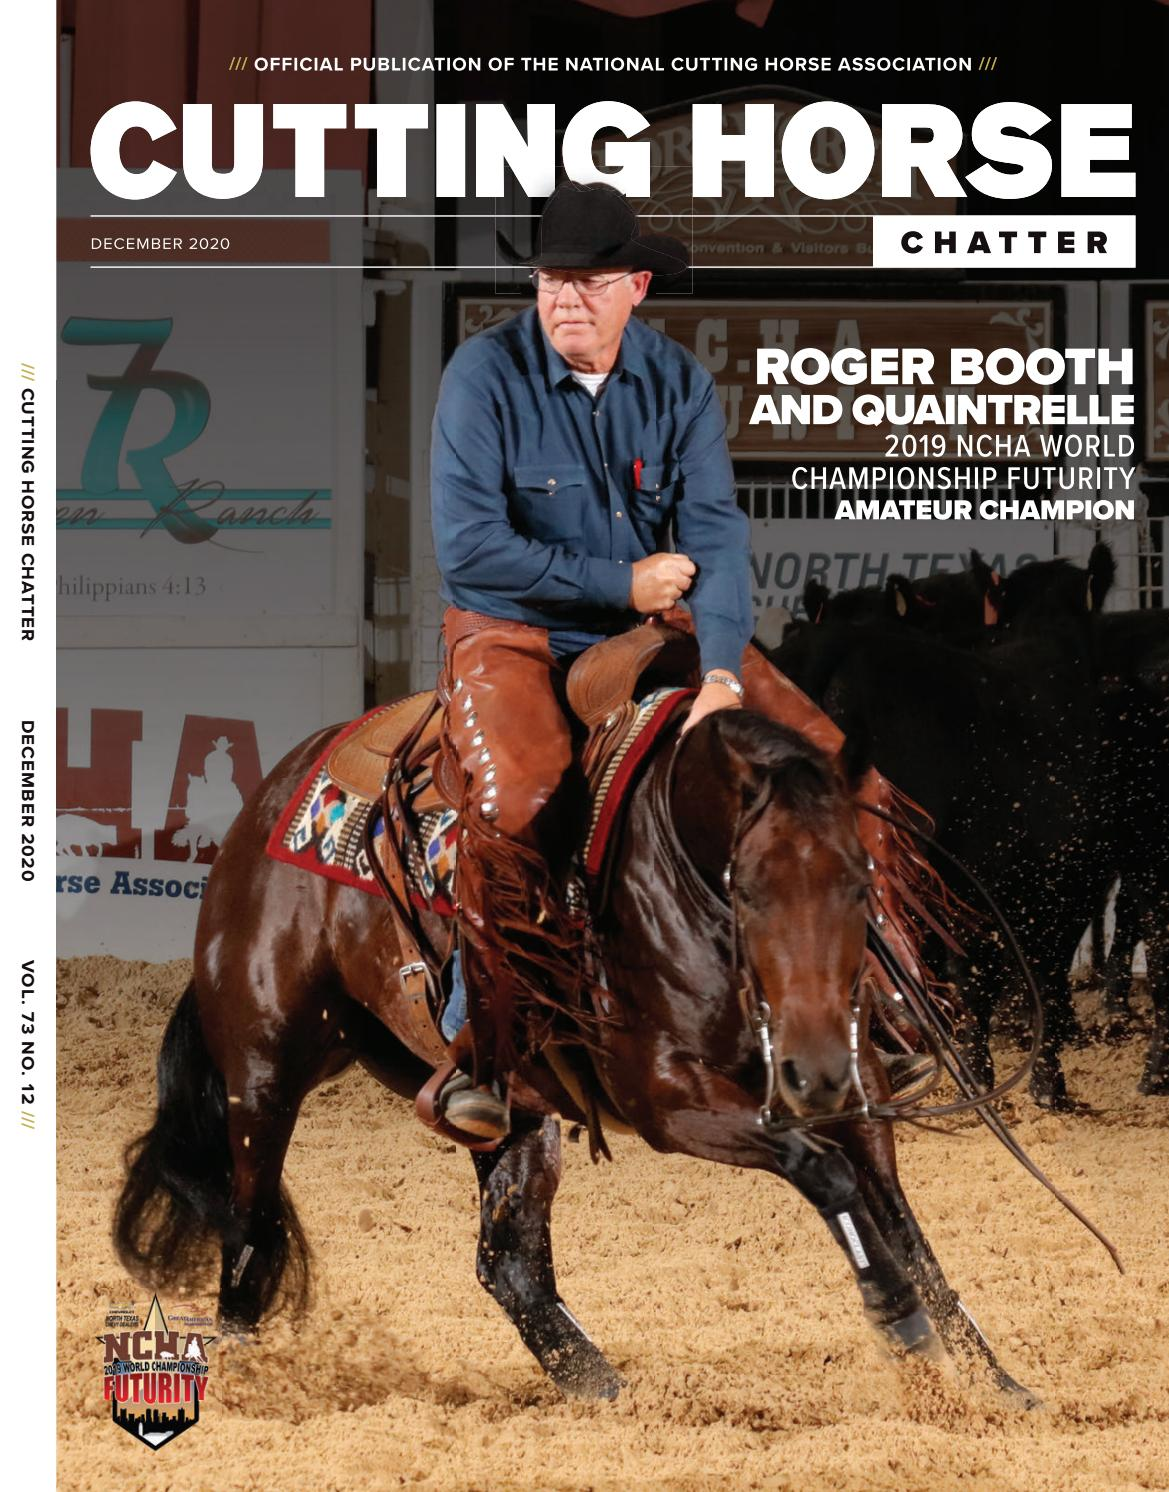 NCHA Cutting Horse Chatter • December 2020 • Vol. 73. No. 12 by